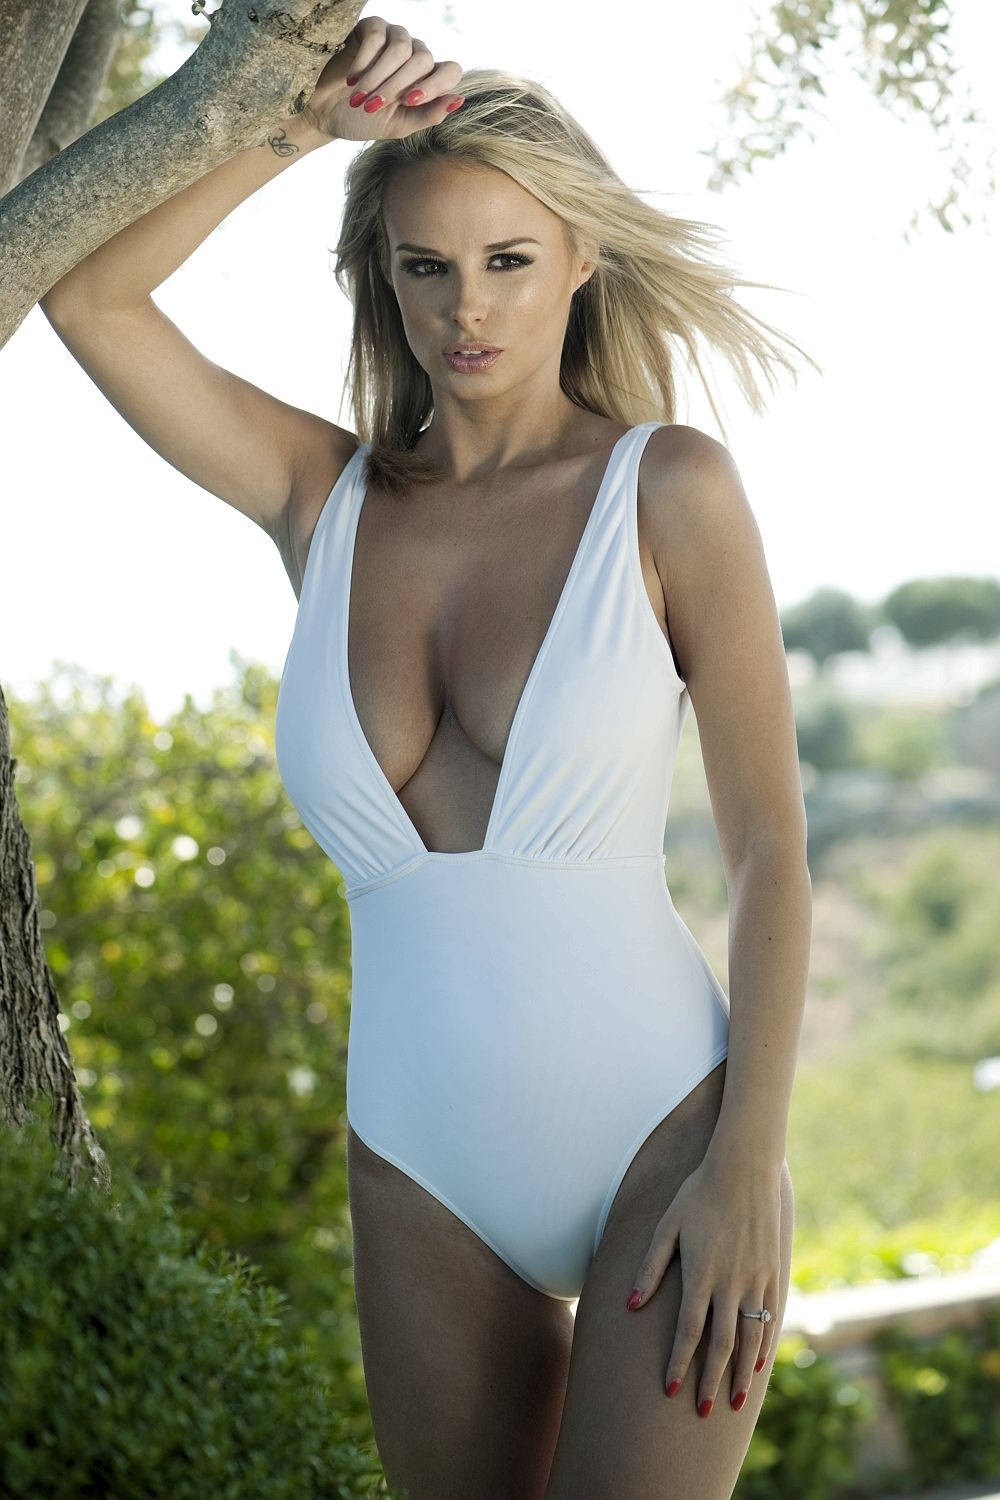 Rhian Sugden in a Swimsuit & Topless (3 Photos)